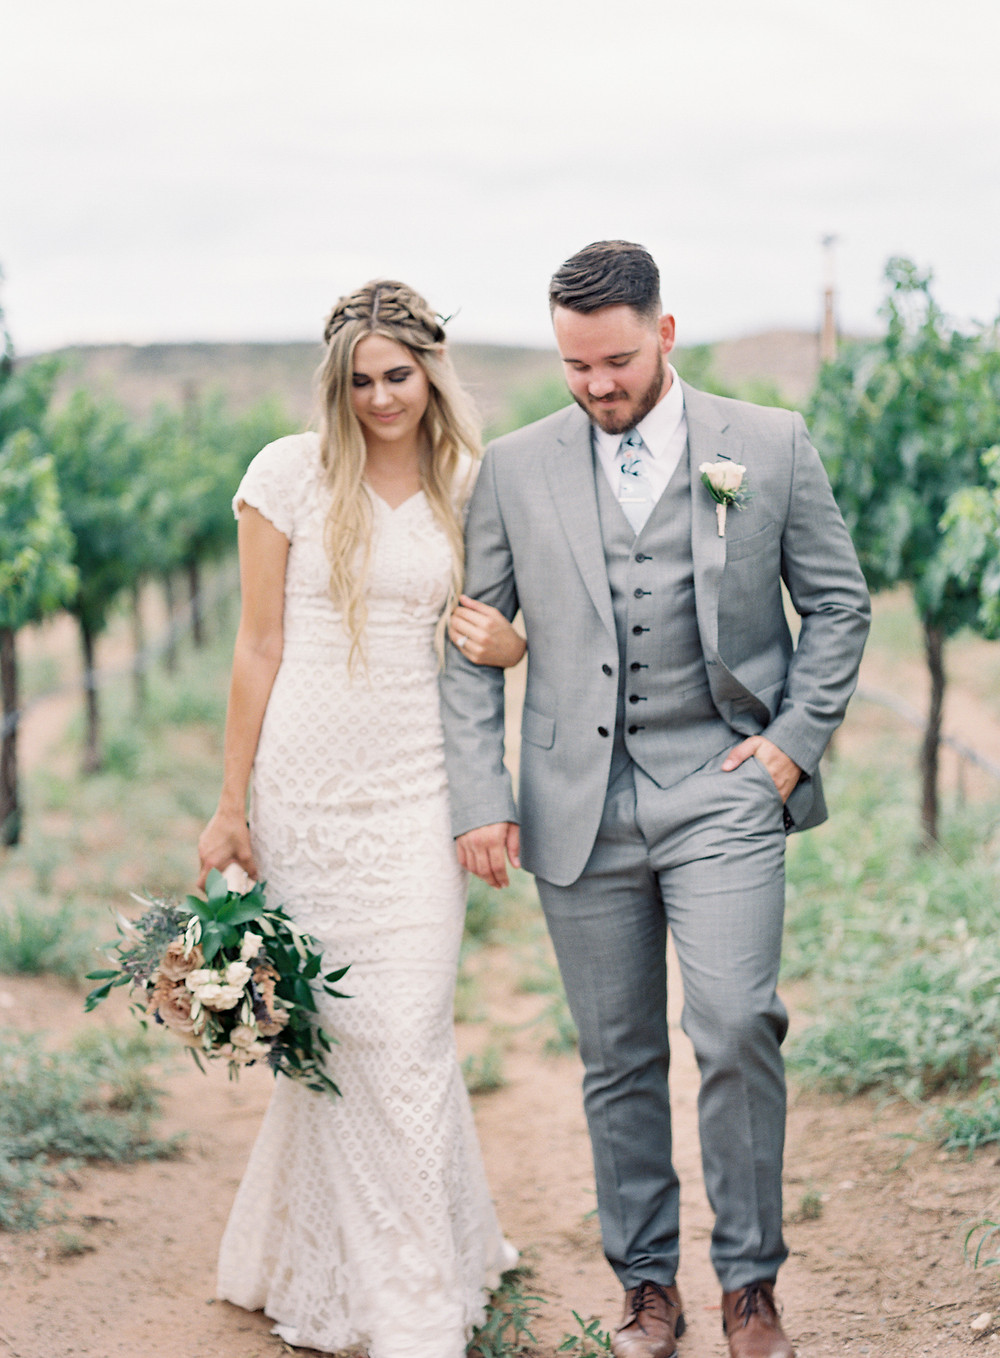 Alcantara Vineyards Wedding, Arizona Fine Art weddings, Arizona fine art wedding photographer